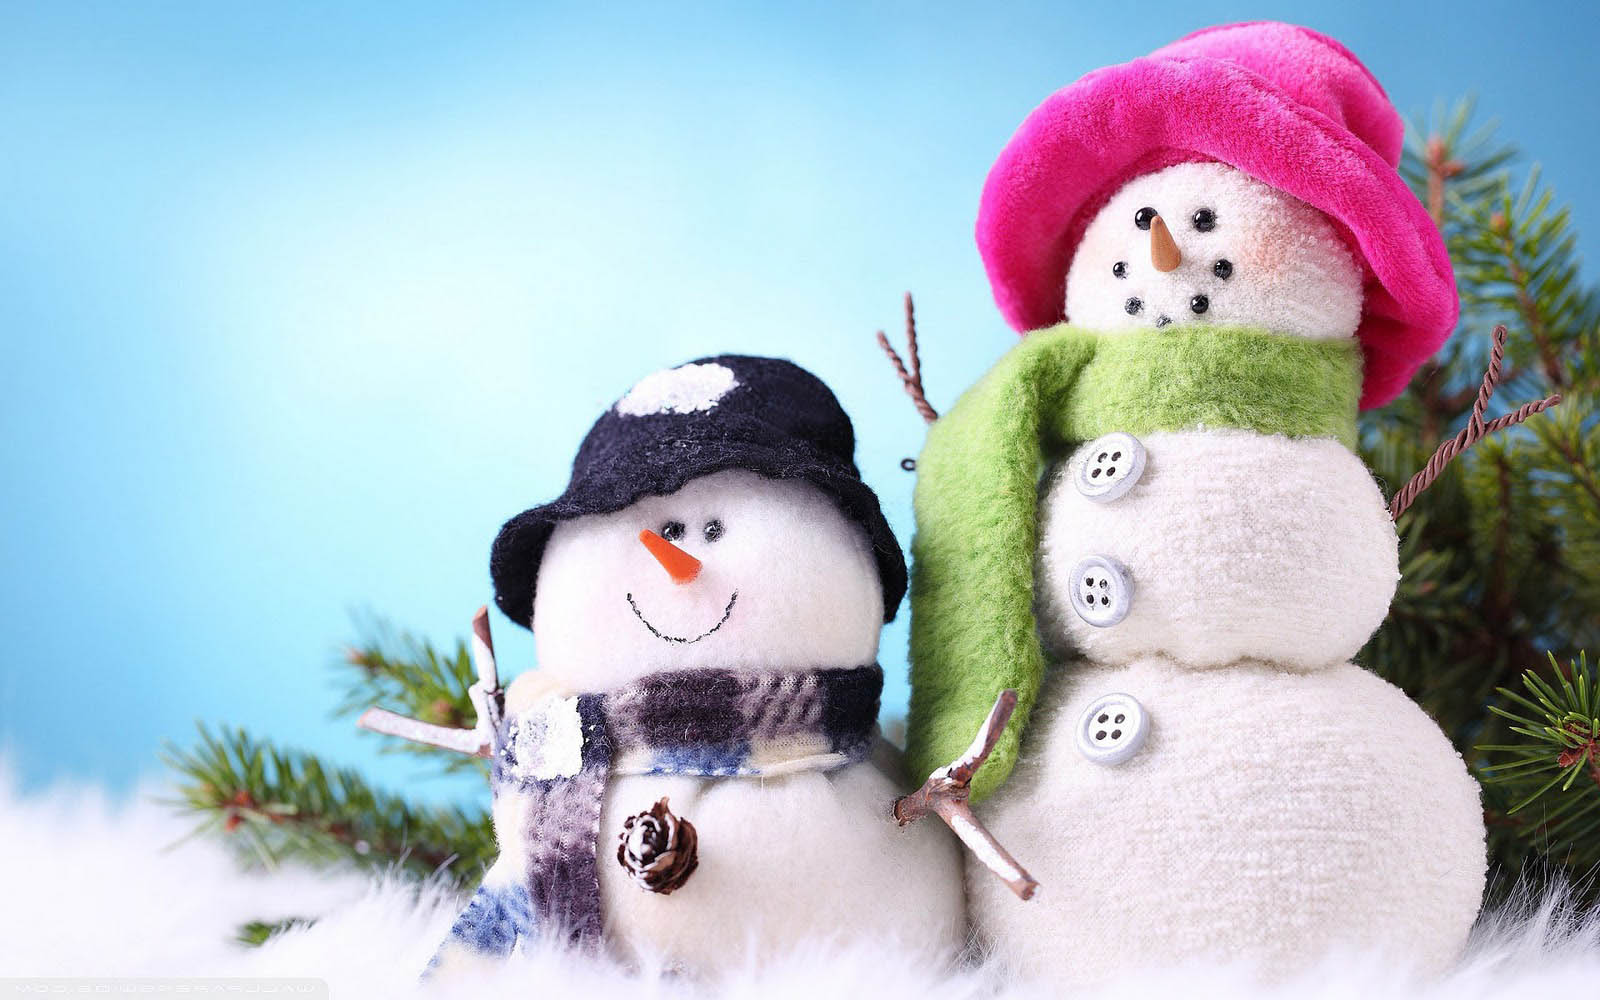 cute country snowman wallpaper - photo #49